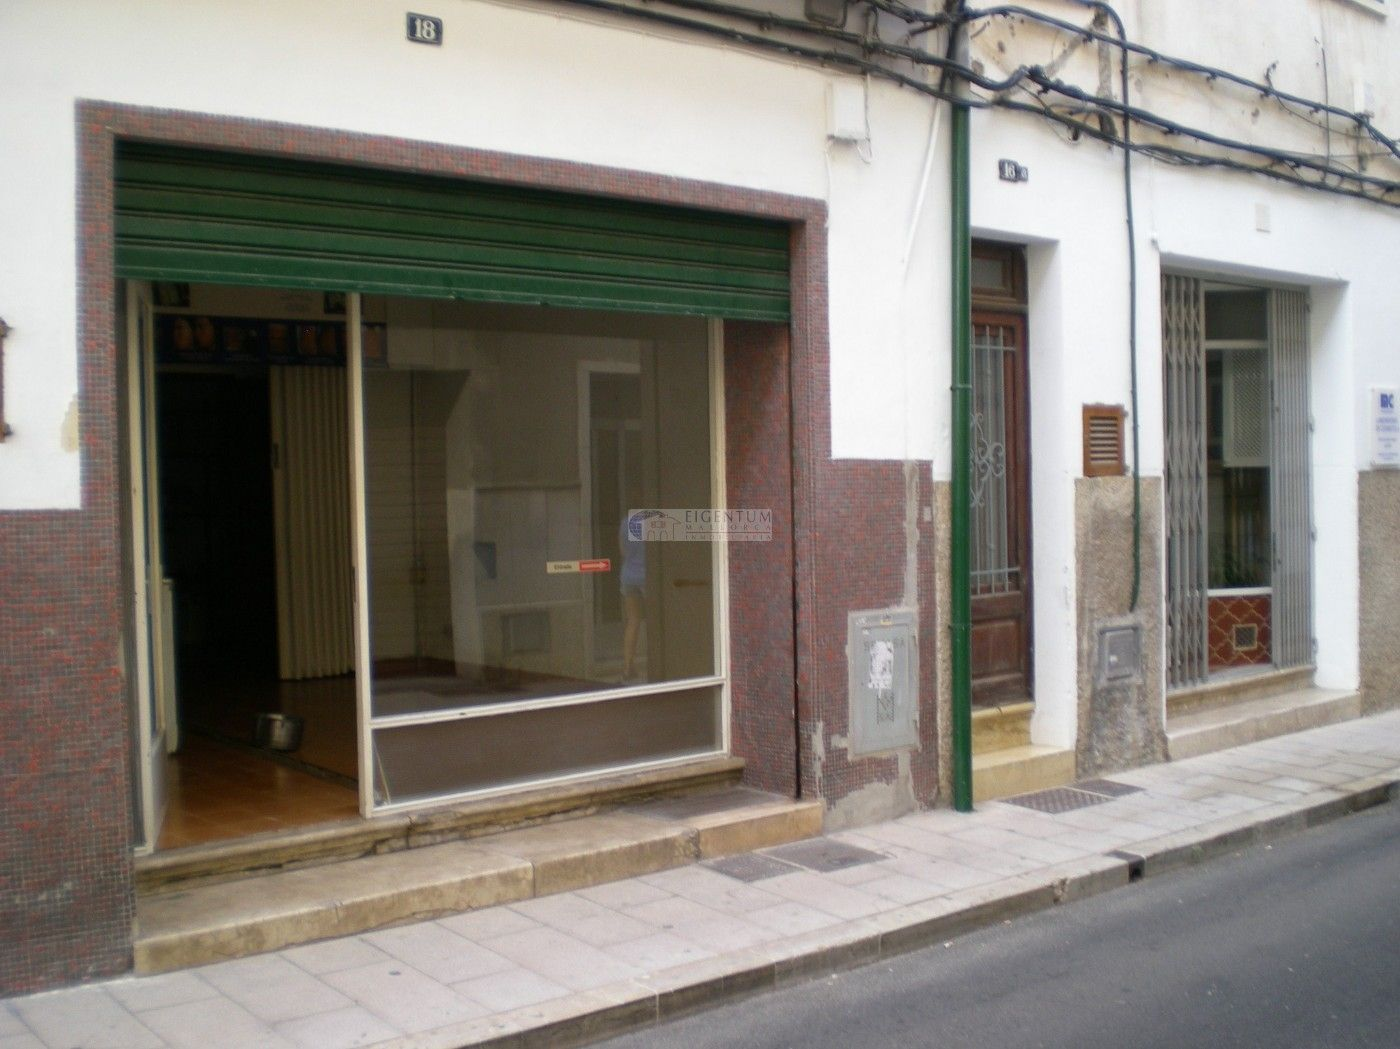 Local commercial à Carrer amistat, 18. Cochera en venta en manacor